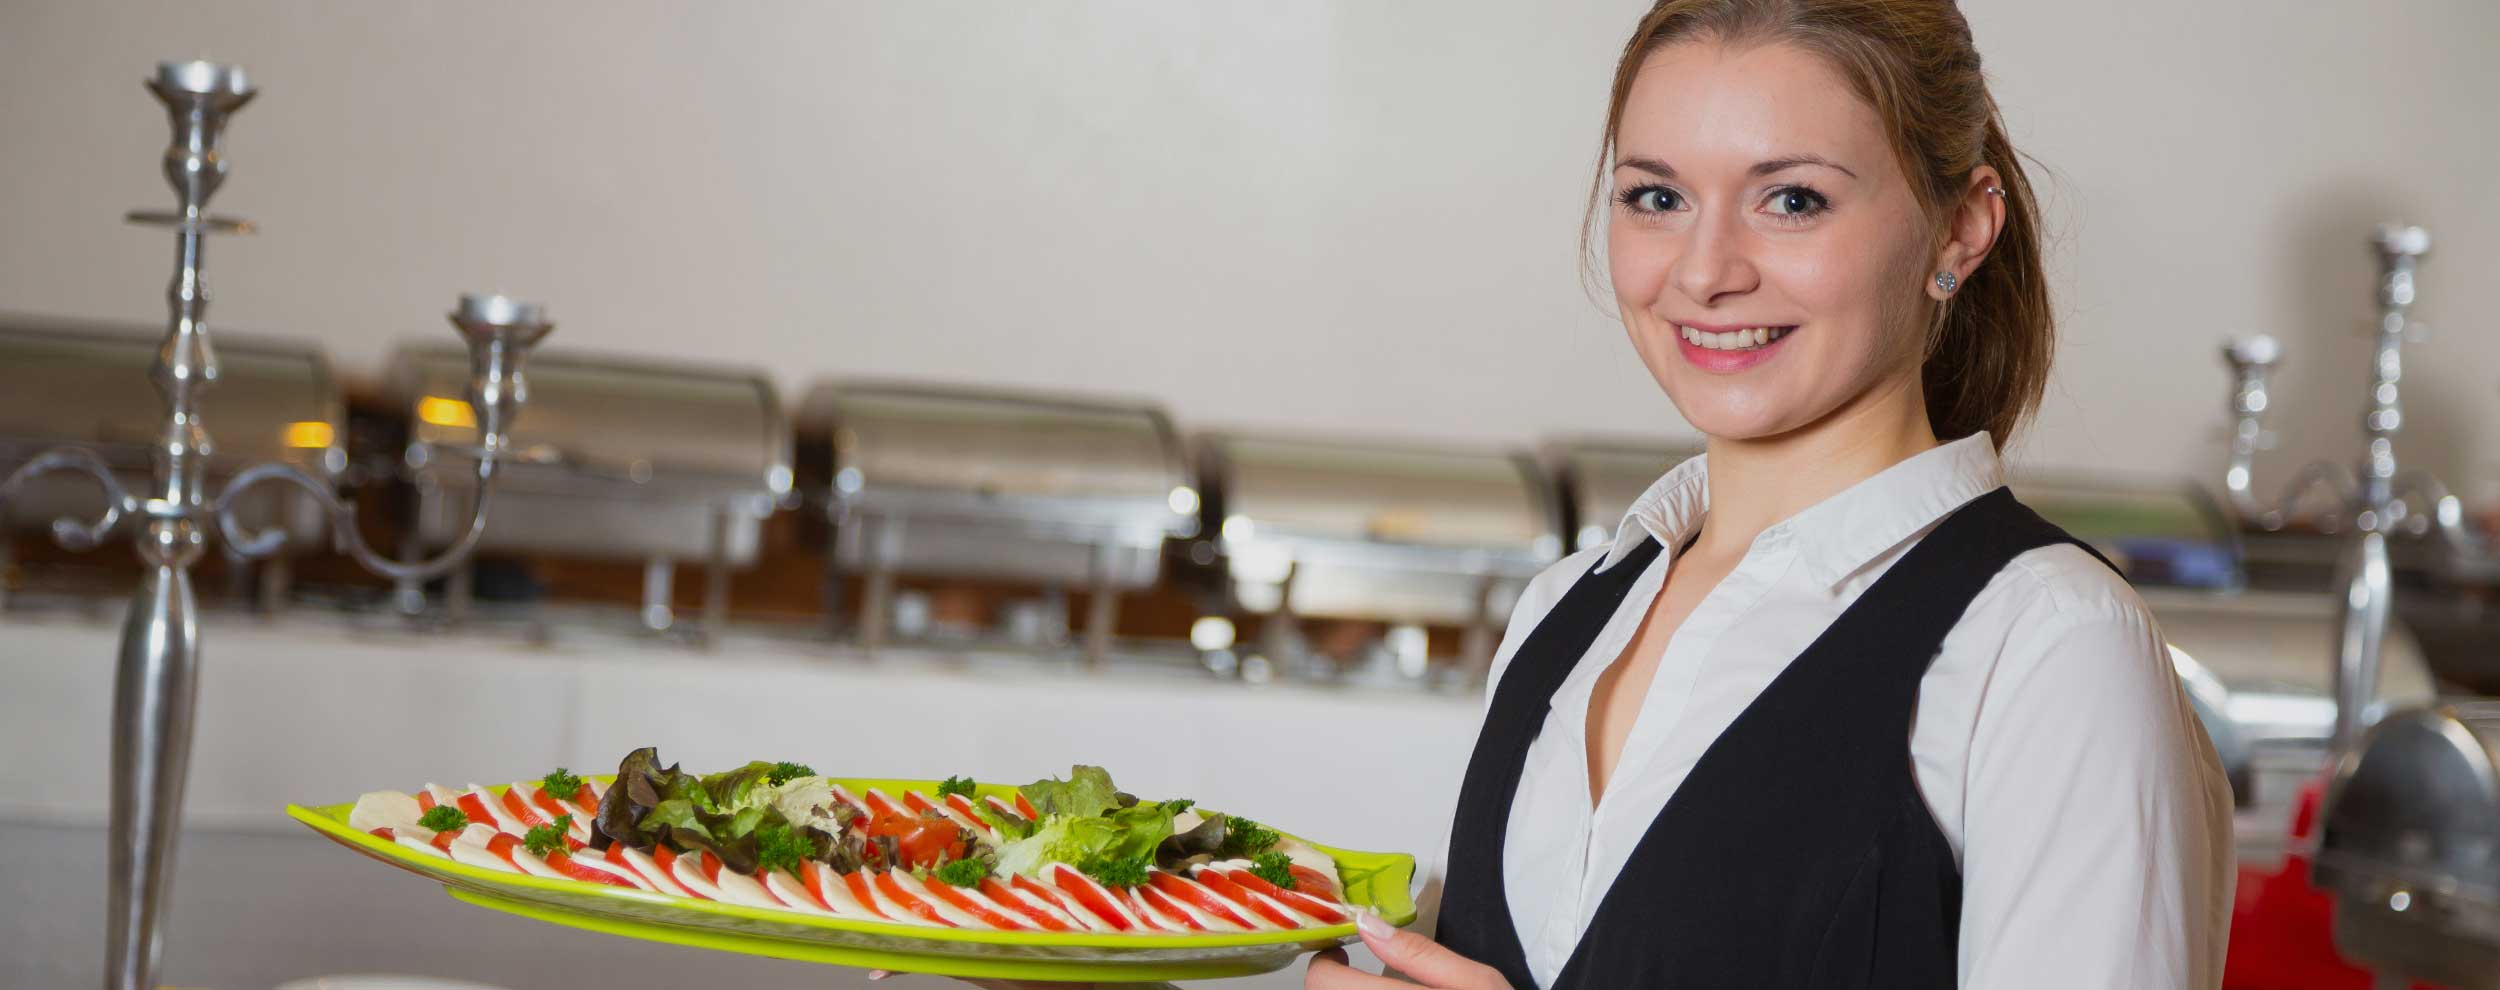 Do you have a catering or party service?